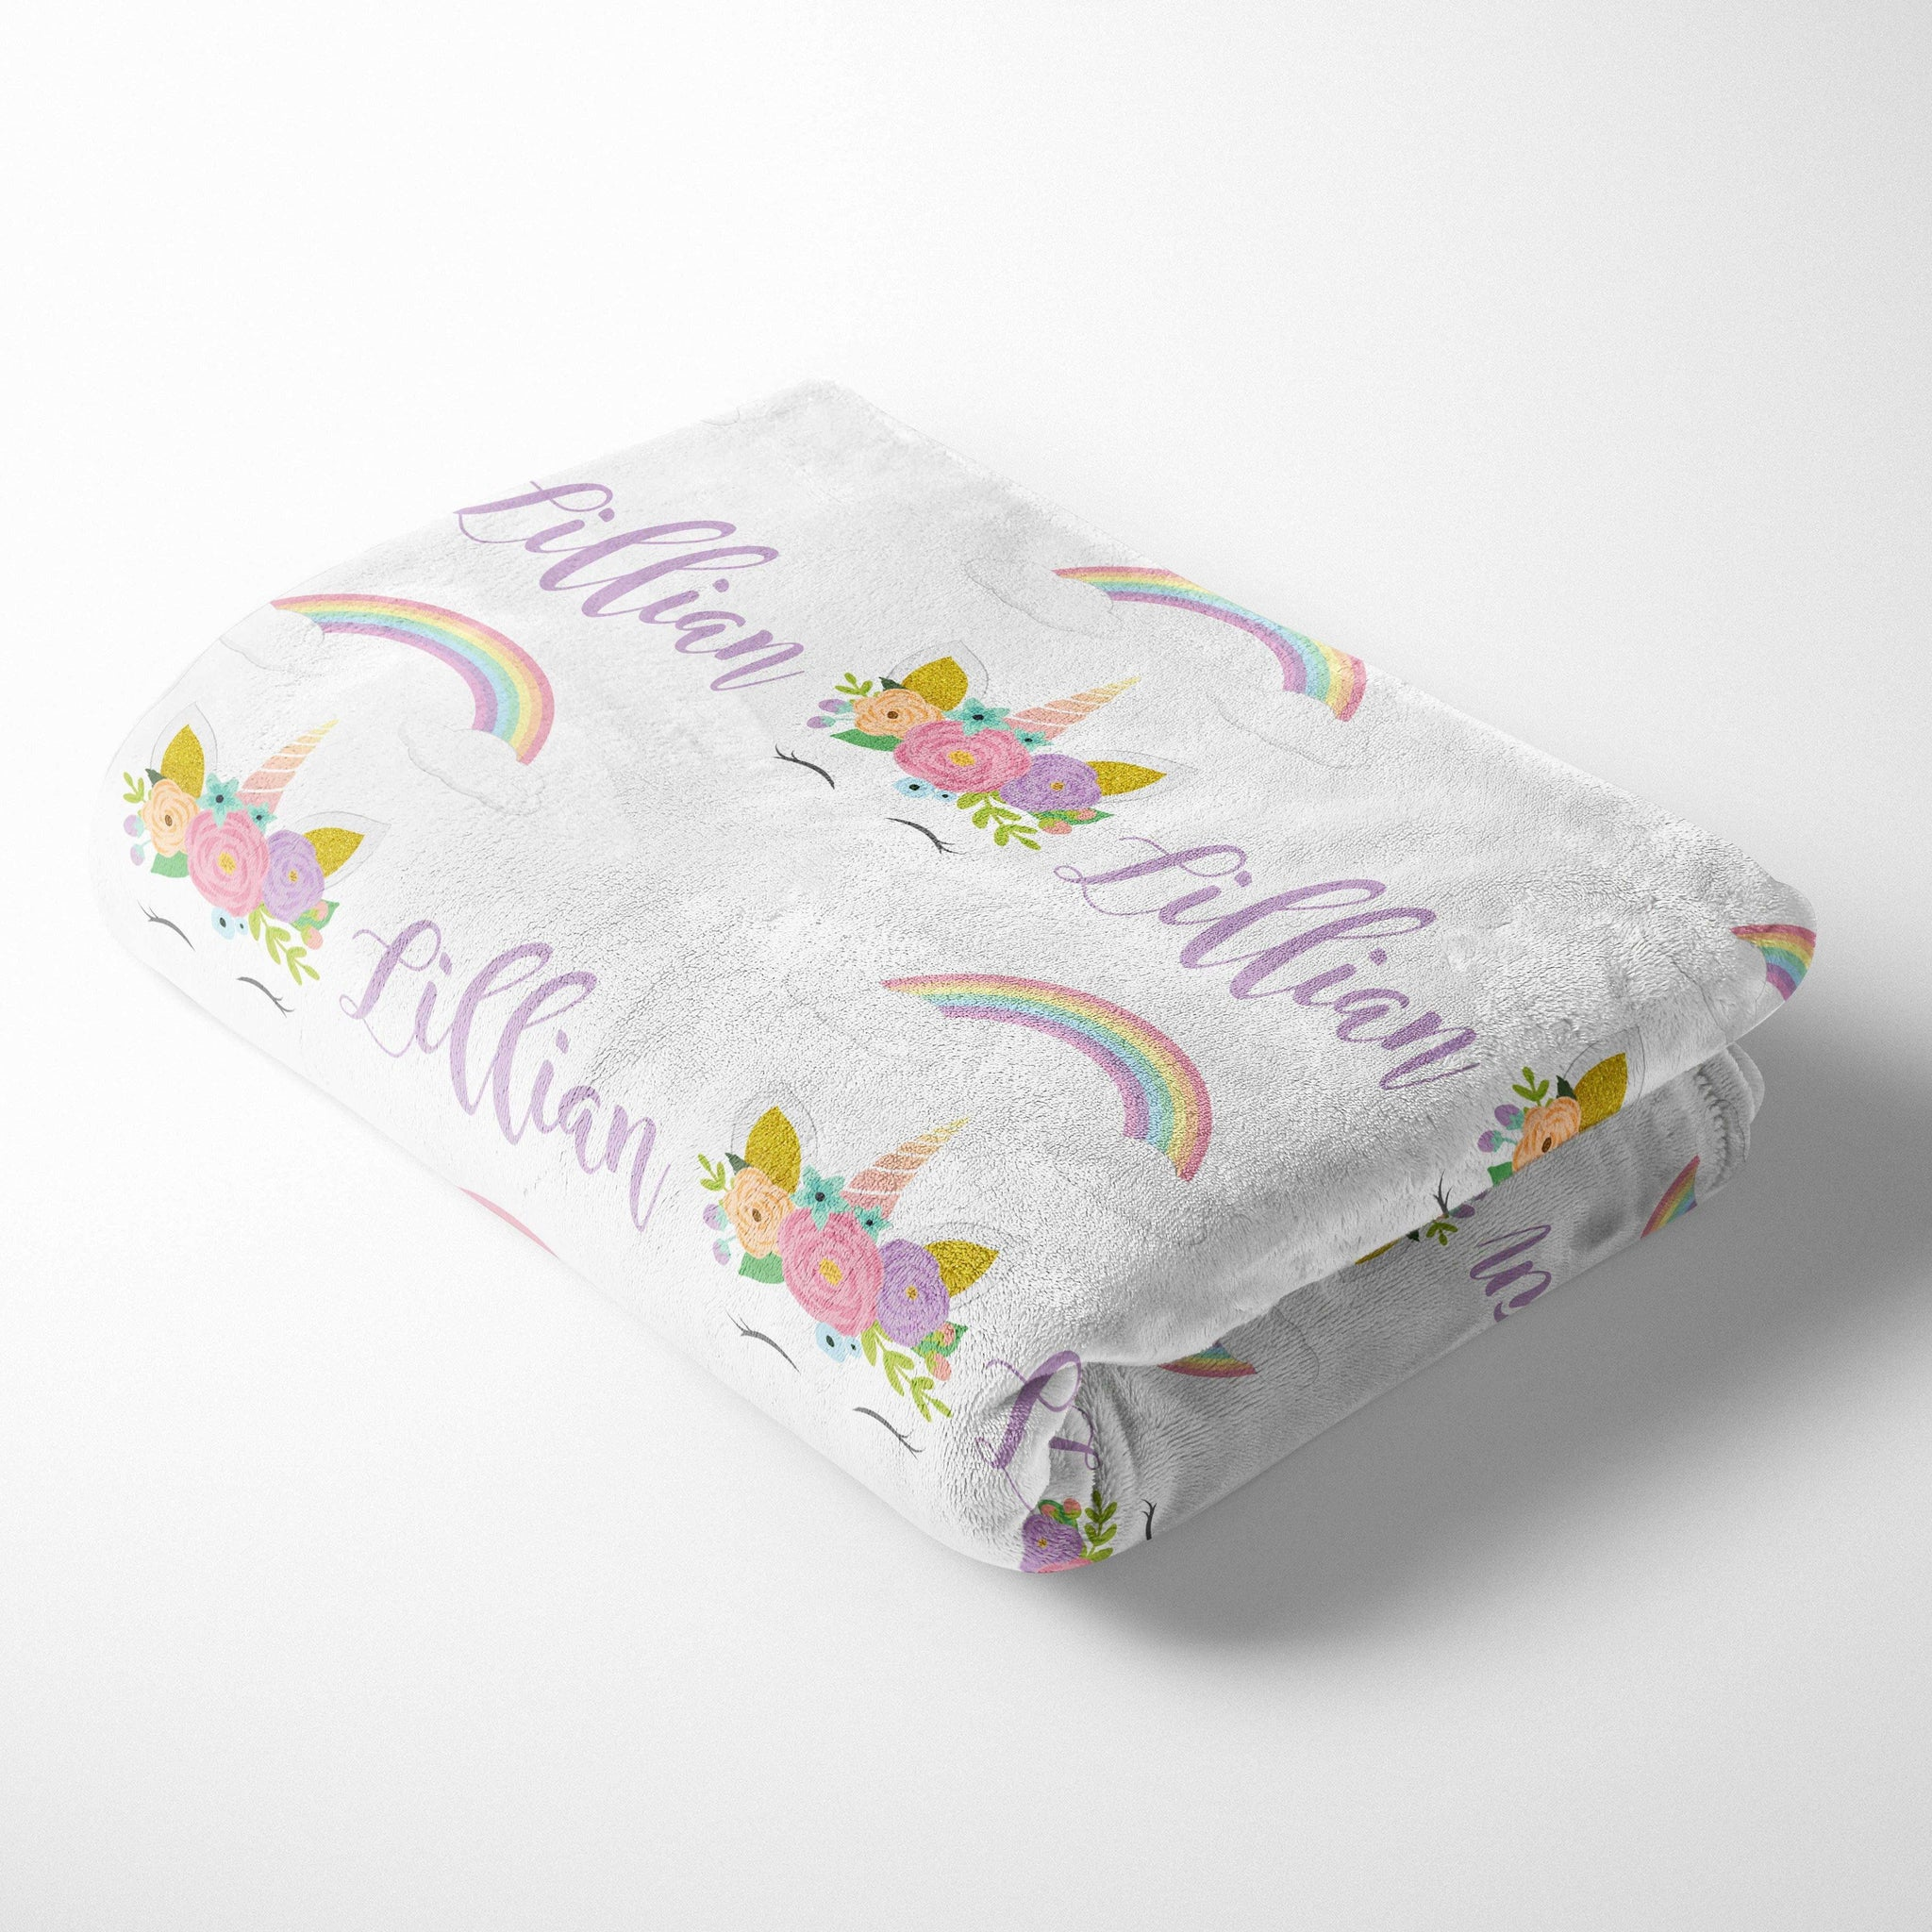 Personalized Kid Blanket - Unicorn and Rainbows